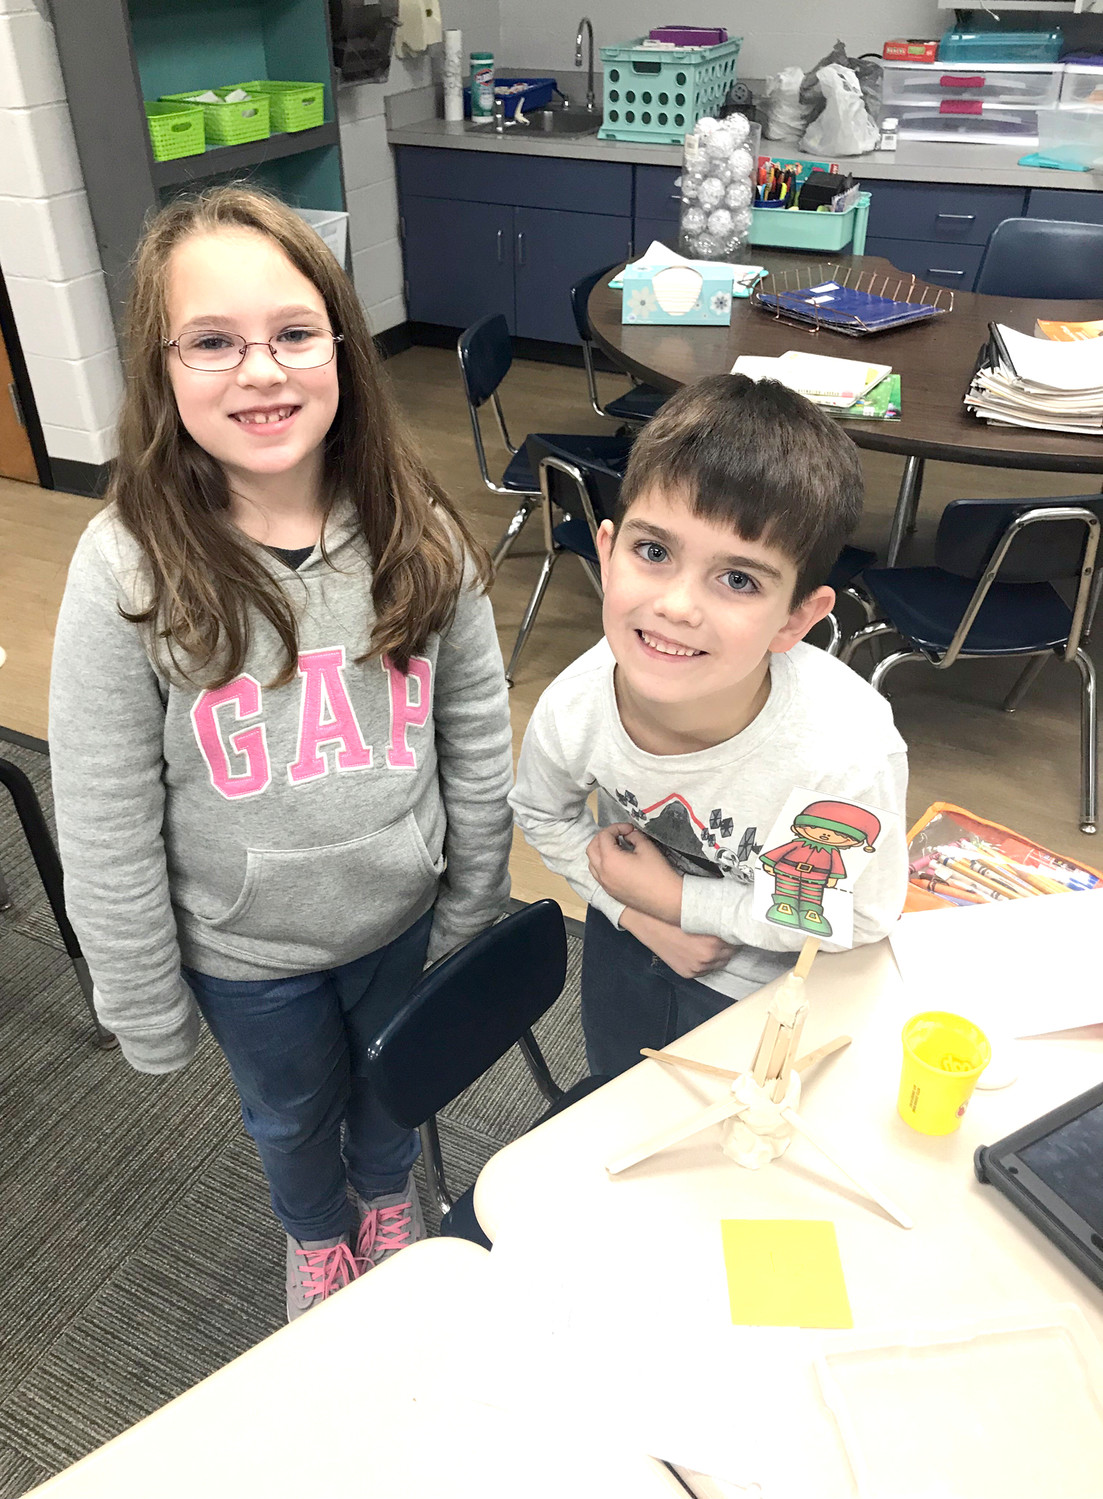 Ms. Koger and Mrs. Lee's first-grade classes at Taylor Elementary school have enjoyed experimenting with some awesome STEM activities. One involved seeing which team could build the tallest shelf for their elf (to keep it out of the reach of little hands). Since an elf looses its magic once it is touched, this was an important task. Students used Play-Doh and popsicle sticks to build their shelves. Each group had three chances to build the tallest without it falling. They used rulers to record heights and try to build the next shelf even taller. It was a great teamwork-building activity, and allowed for lots of creativity.